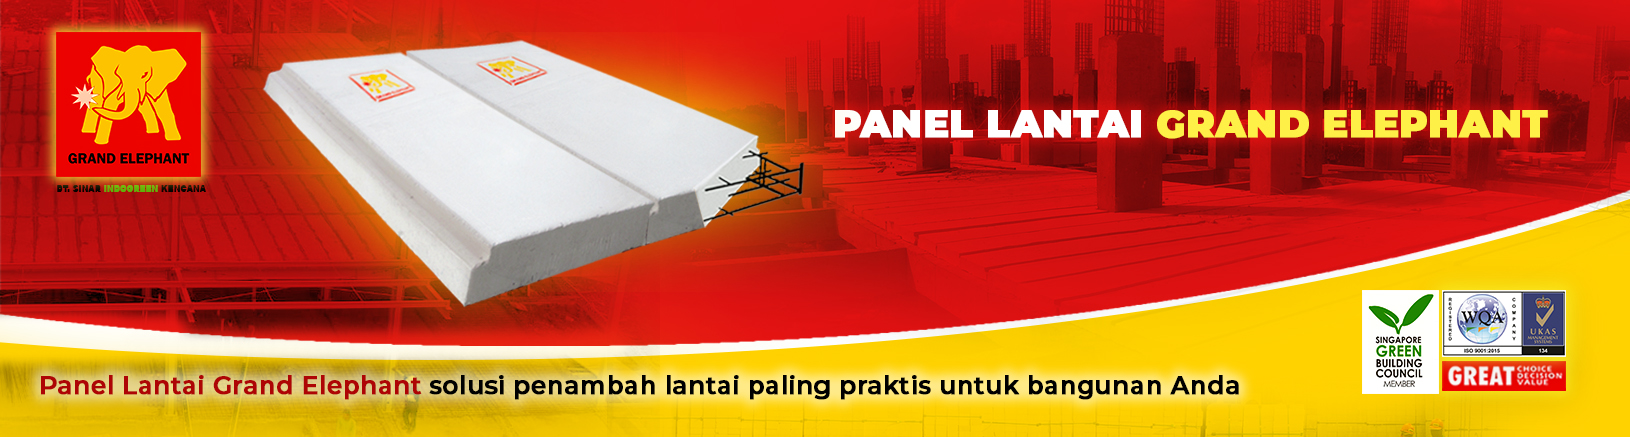 HEADER-WEBSITE-PANEL-LANTAI-TRIAL